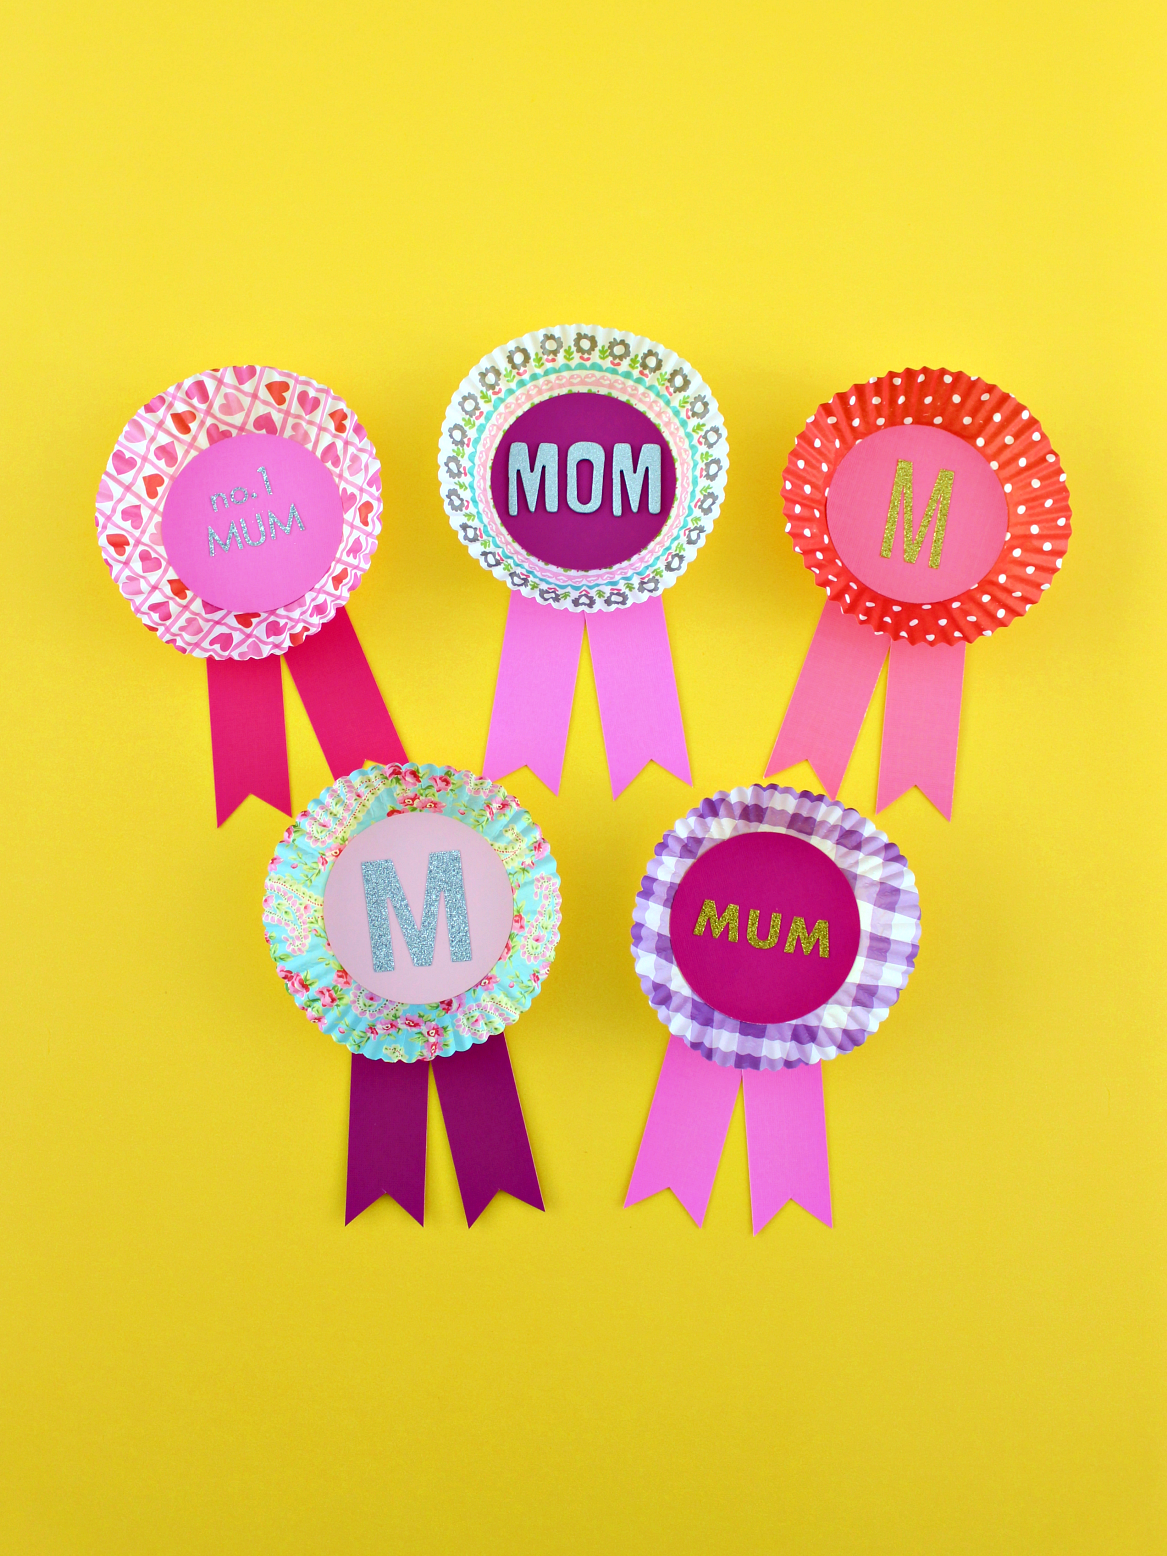 FOR MOM: EASY CUPCAKE LINER NAME BADGE